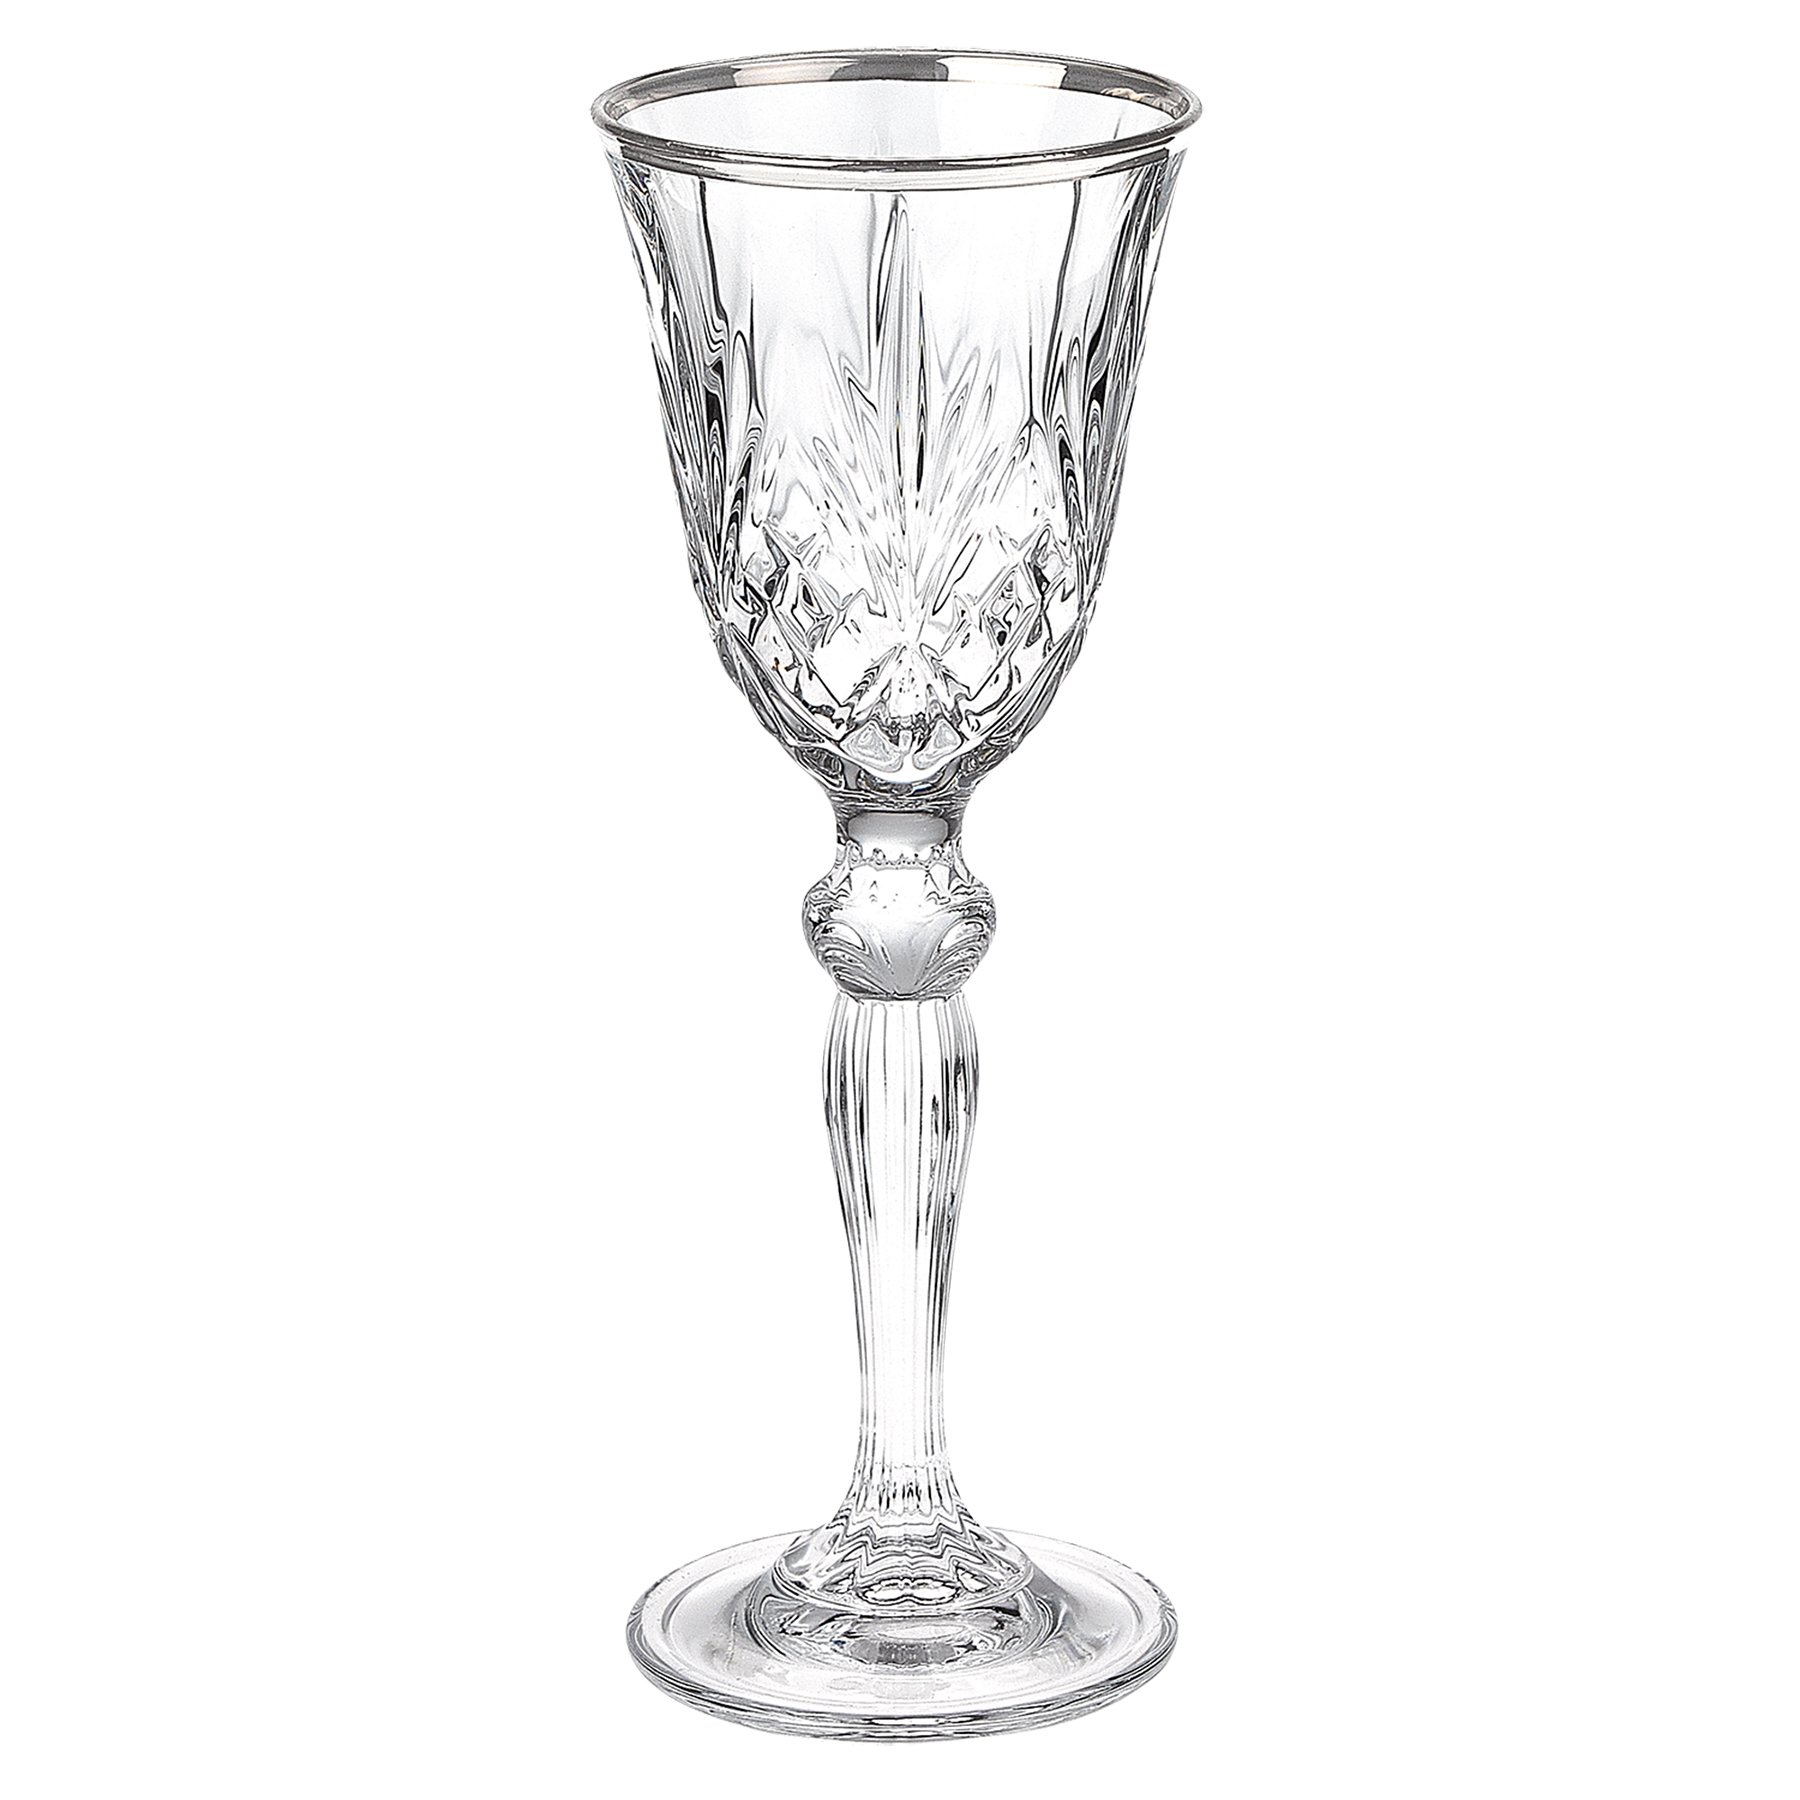 Lorren Home Trends Dynasty Collection Crystal Cordial Liquor Glass with Silver Band, Set of 6 by Lorren Home Trends